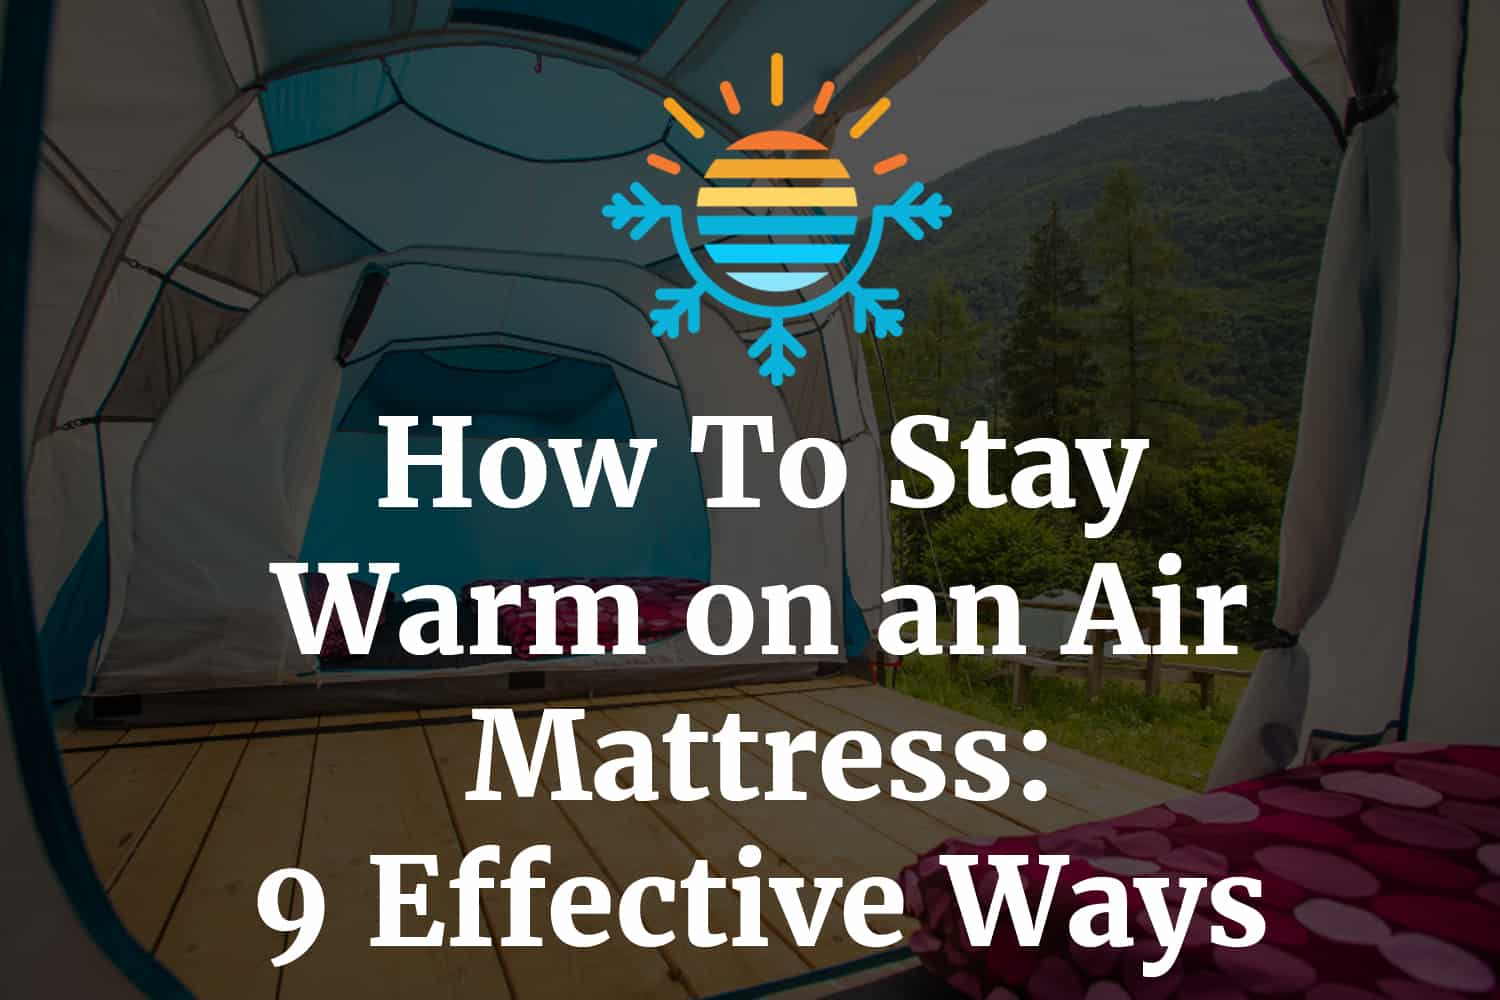 How to Stay Warm on an Air Mattress